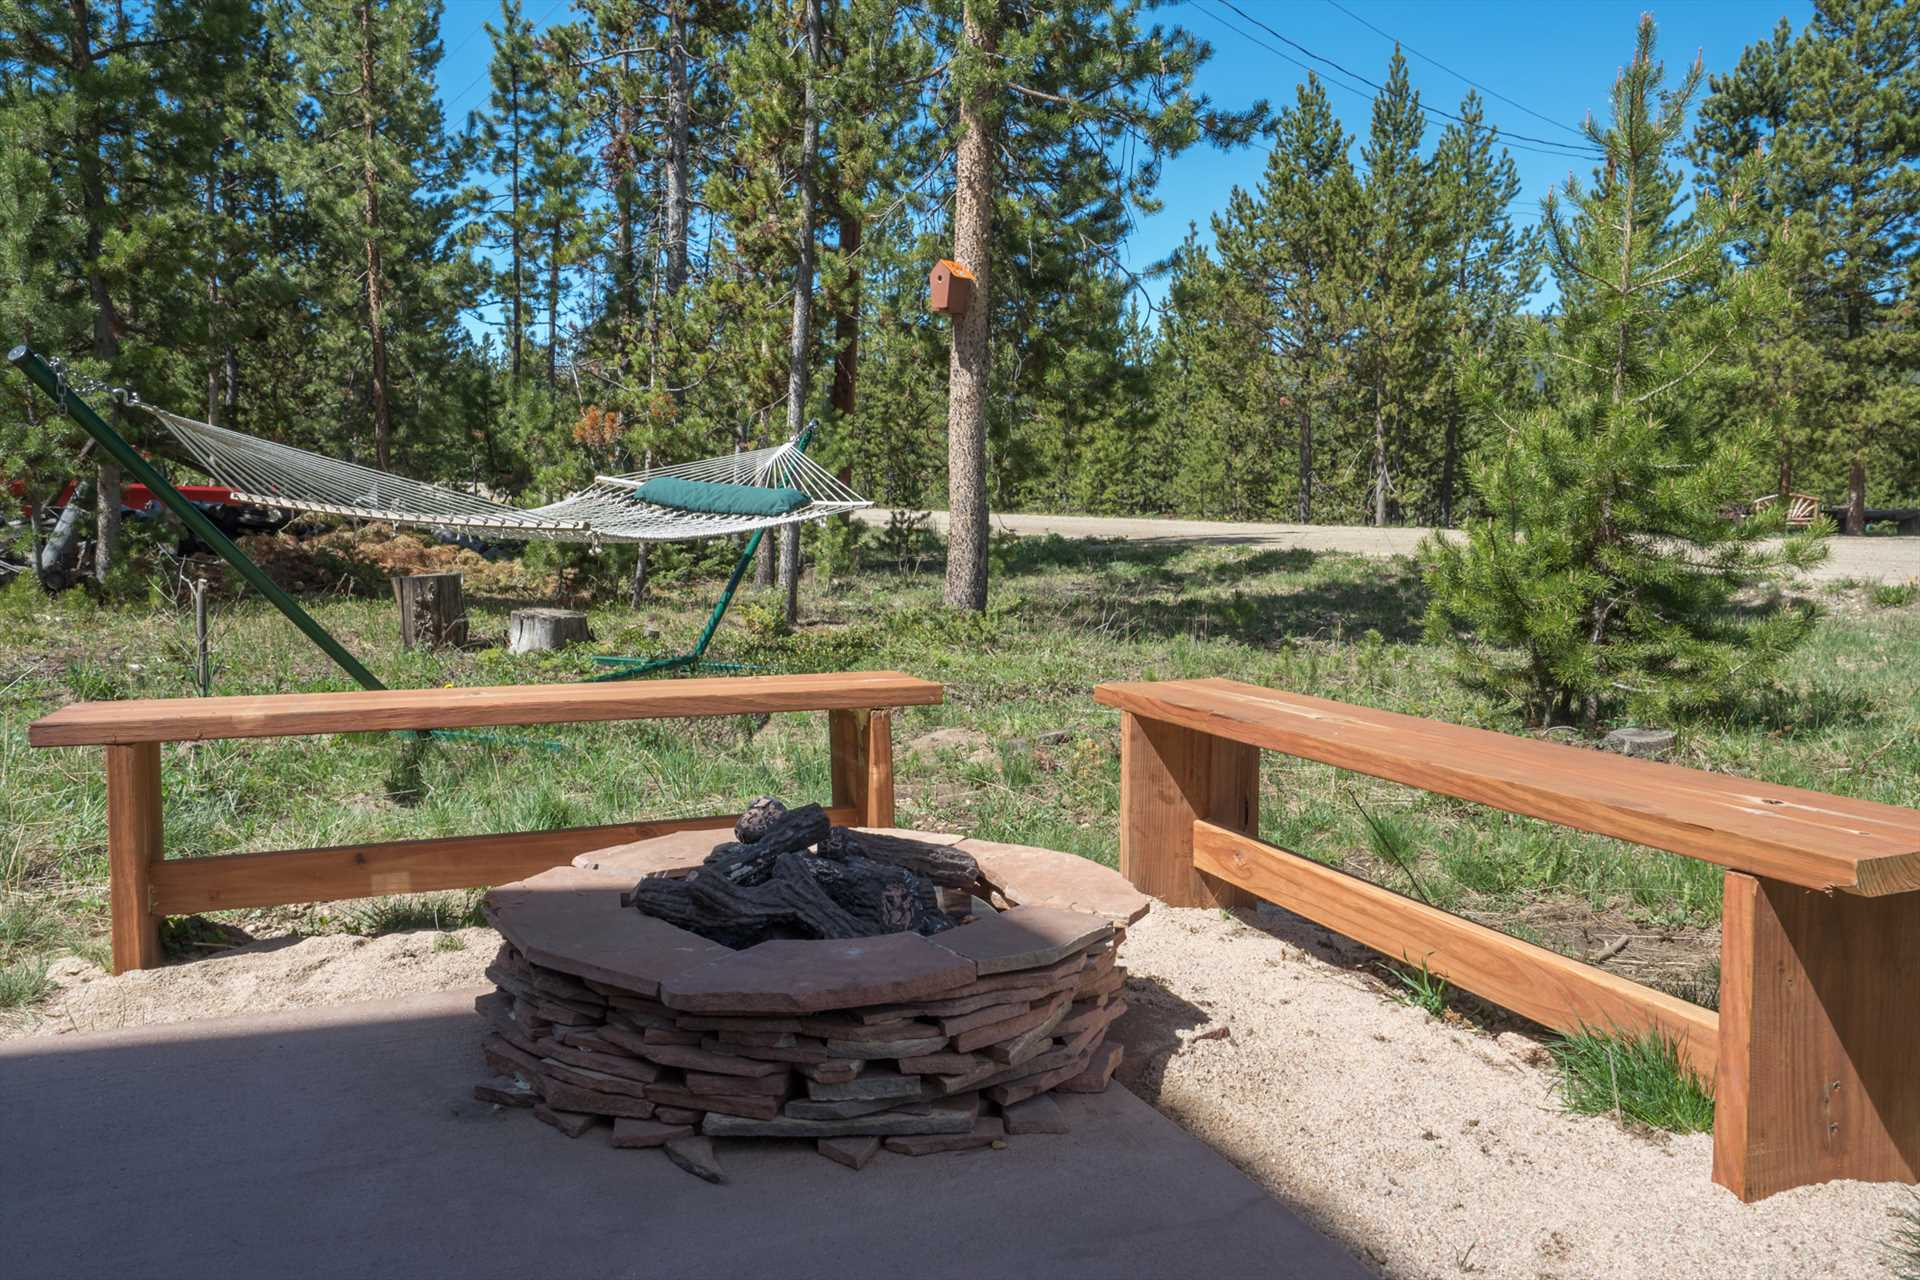 Fire Pit and Hammock